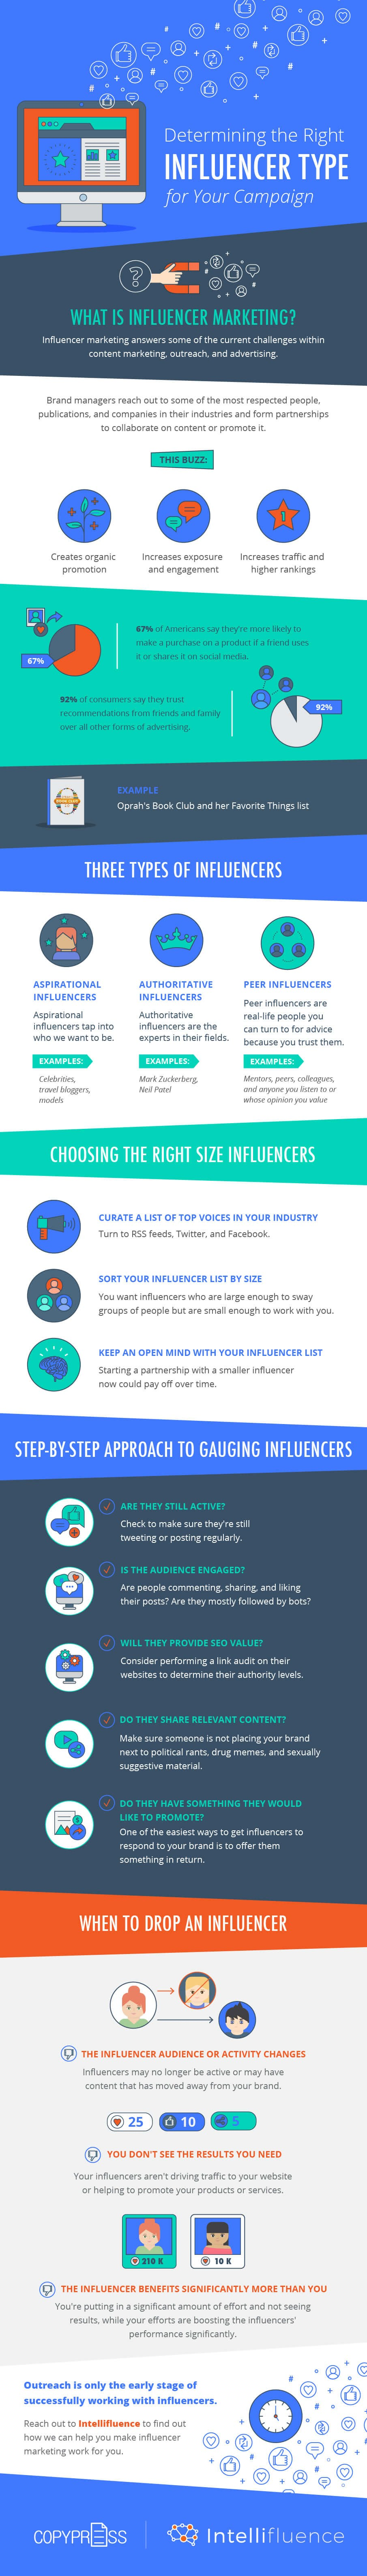 Determining the Right Influencer Type for Your Campaign - #infographic